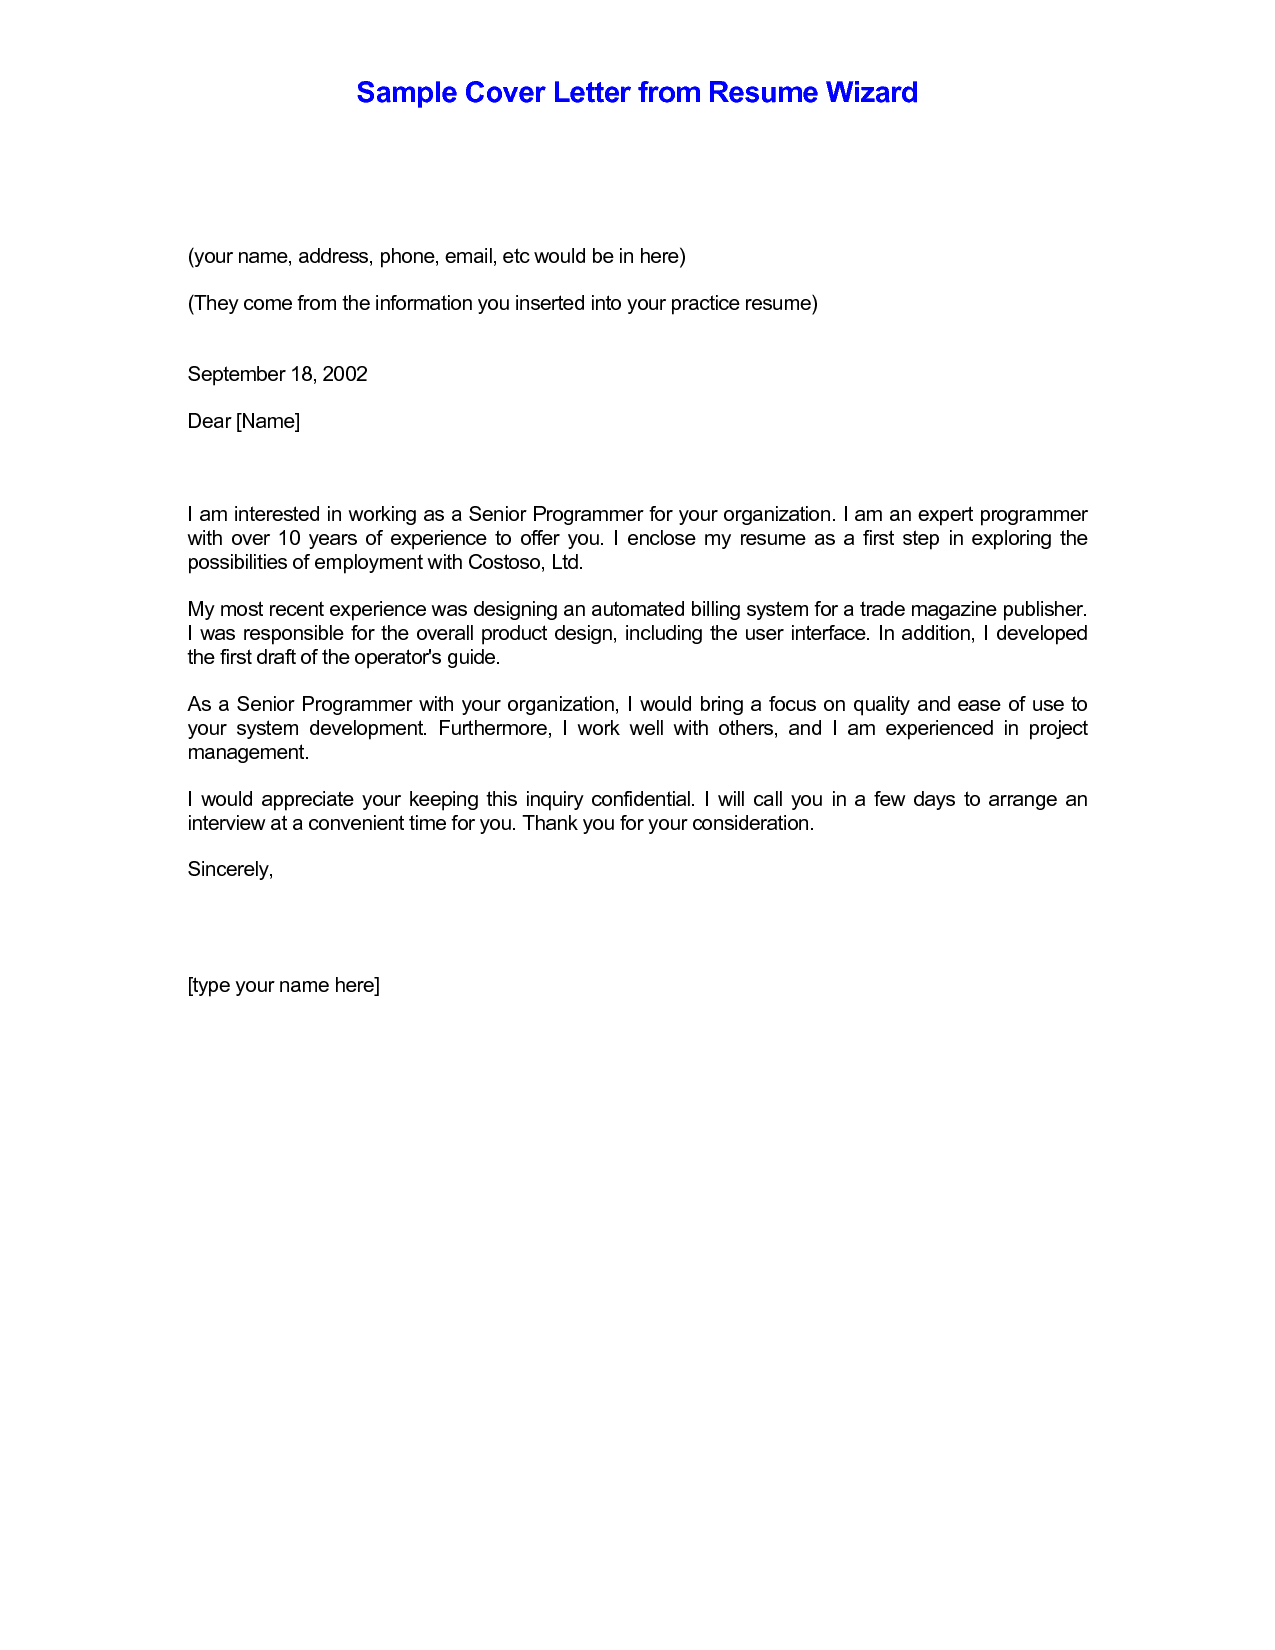 email with cv and cover letter attached